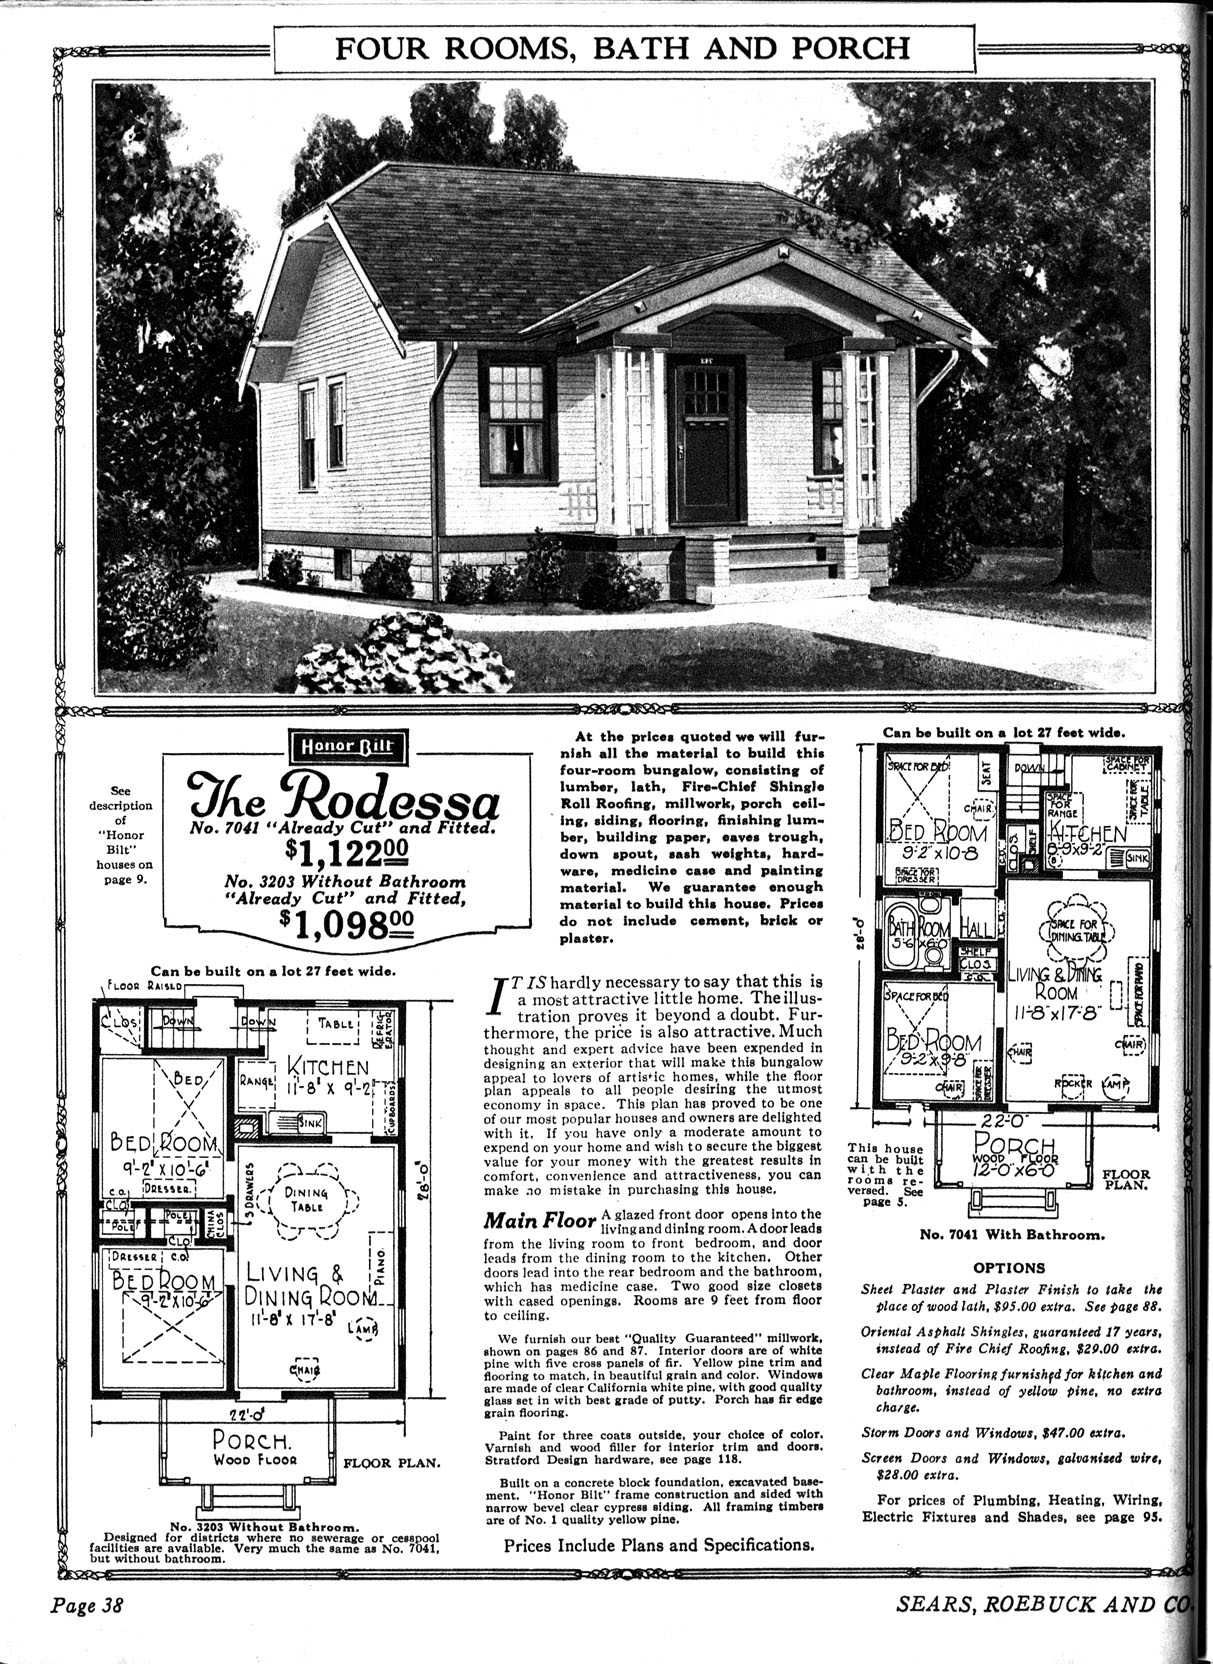 Sears should start selling house kits again. I would TOTALLY order a mail  order house that was less than a year's wage.